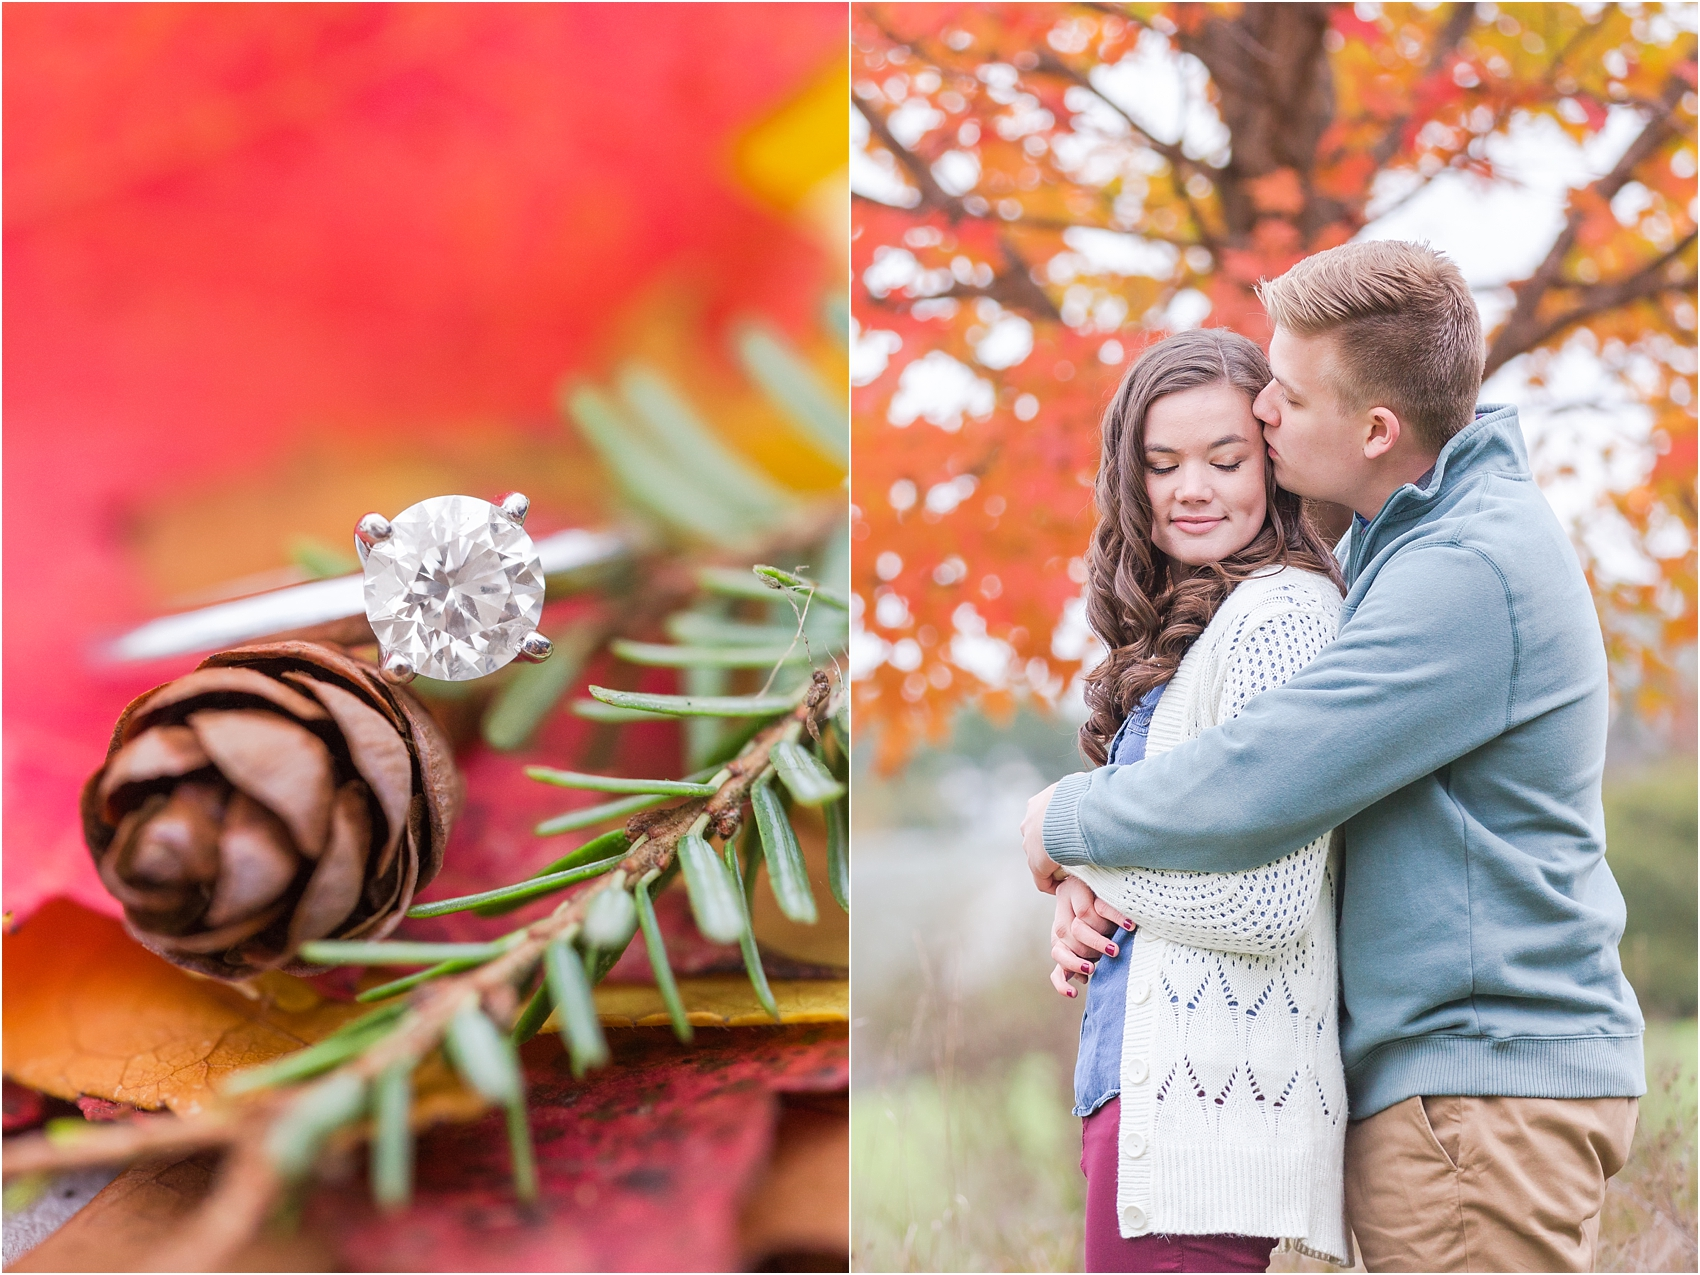 emotional-candid-romantic-engagement-photos-in-detroit-chicago-northern-michigan-by-courtney-carolyn-photography_0002.jpg